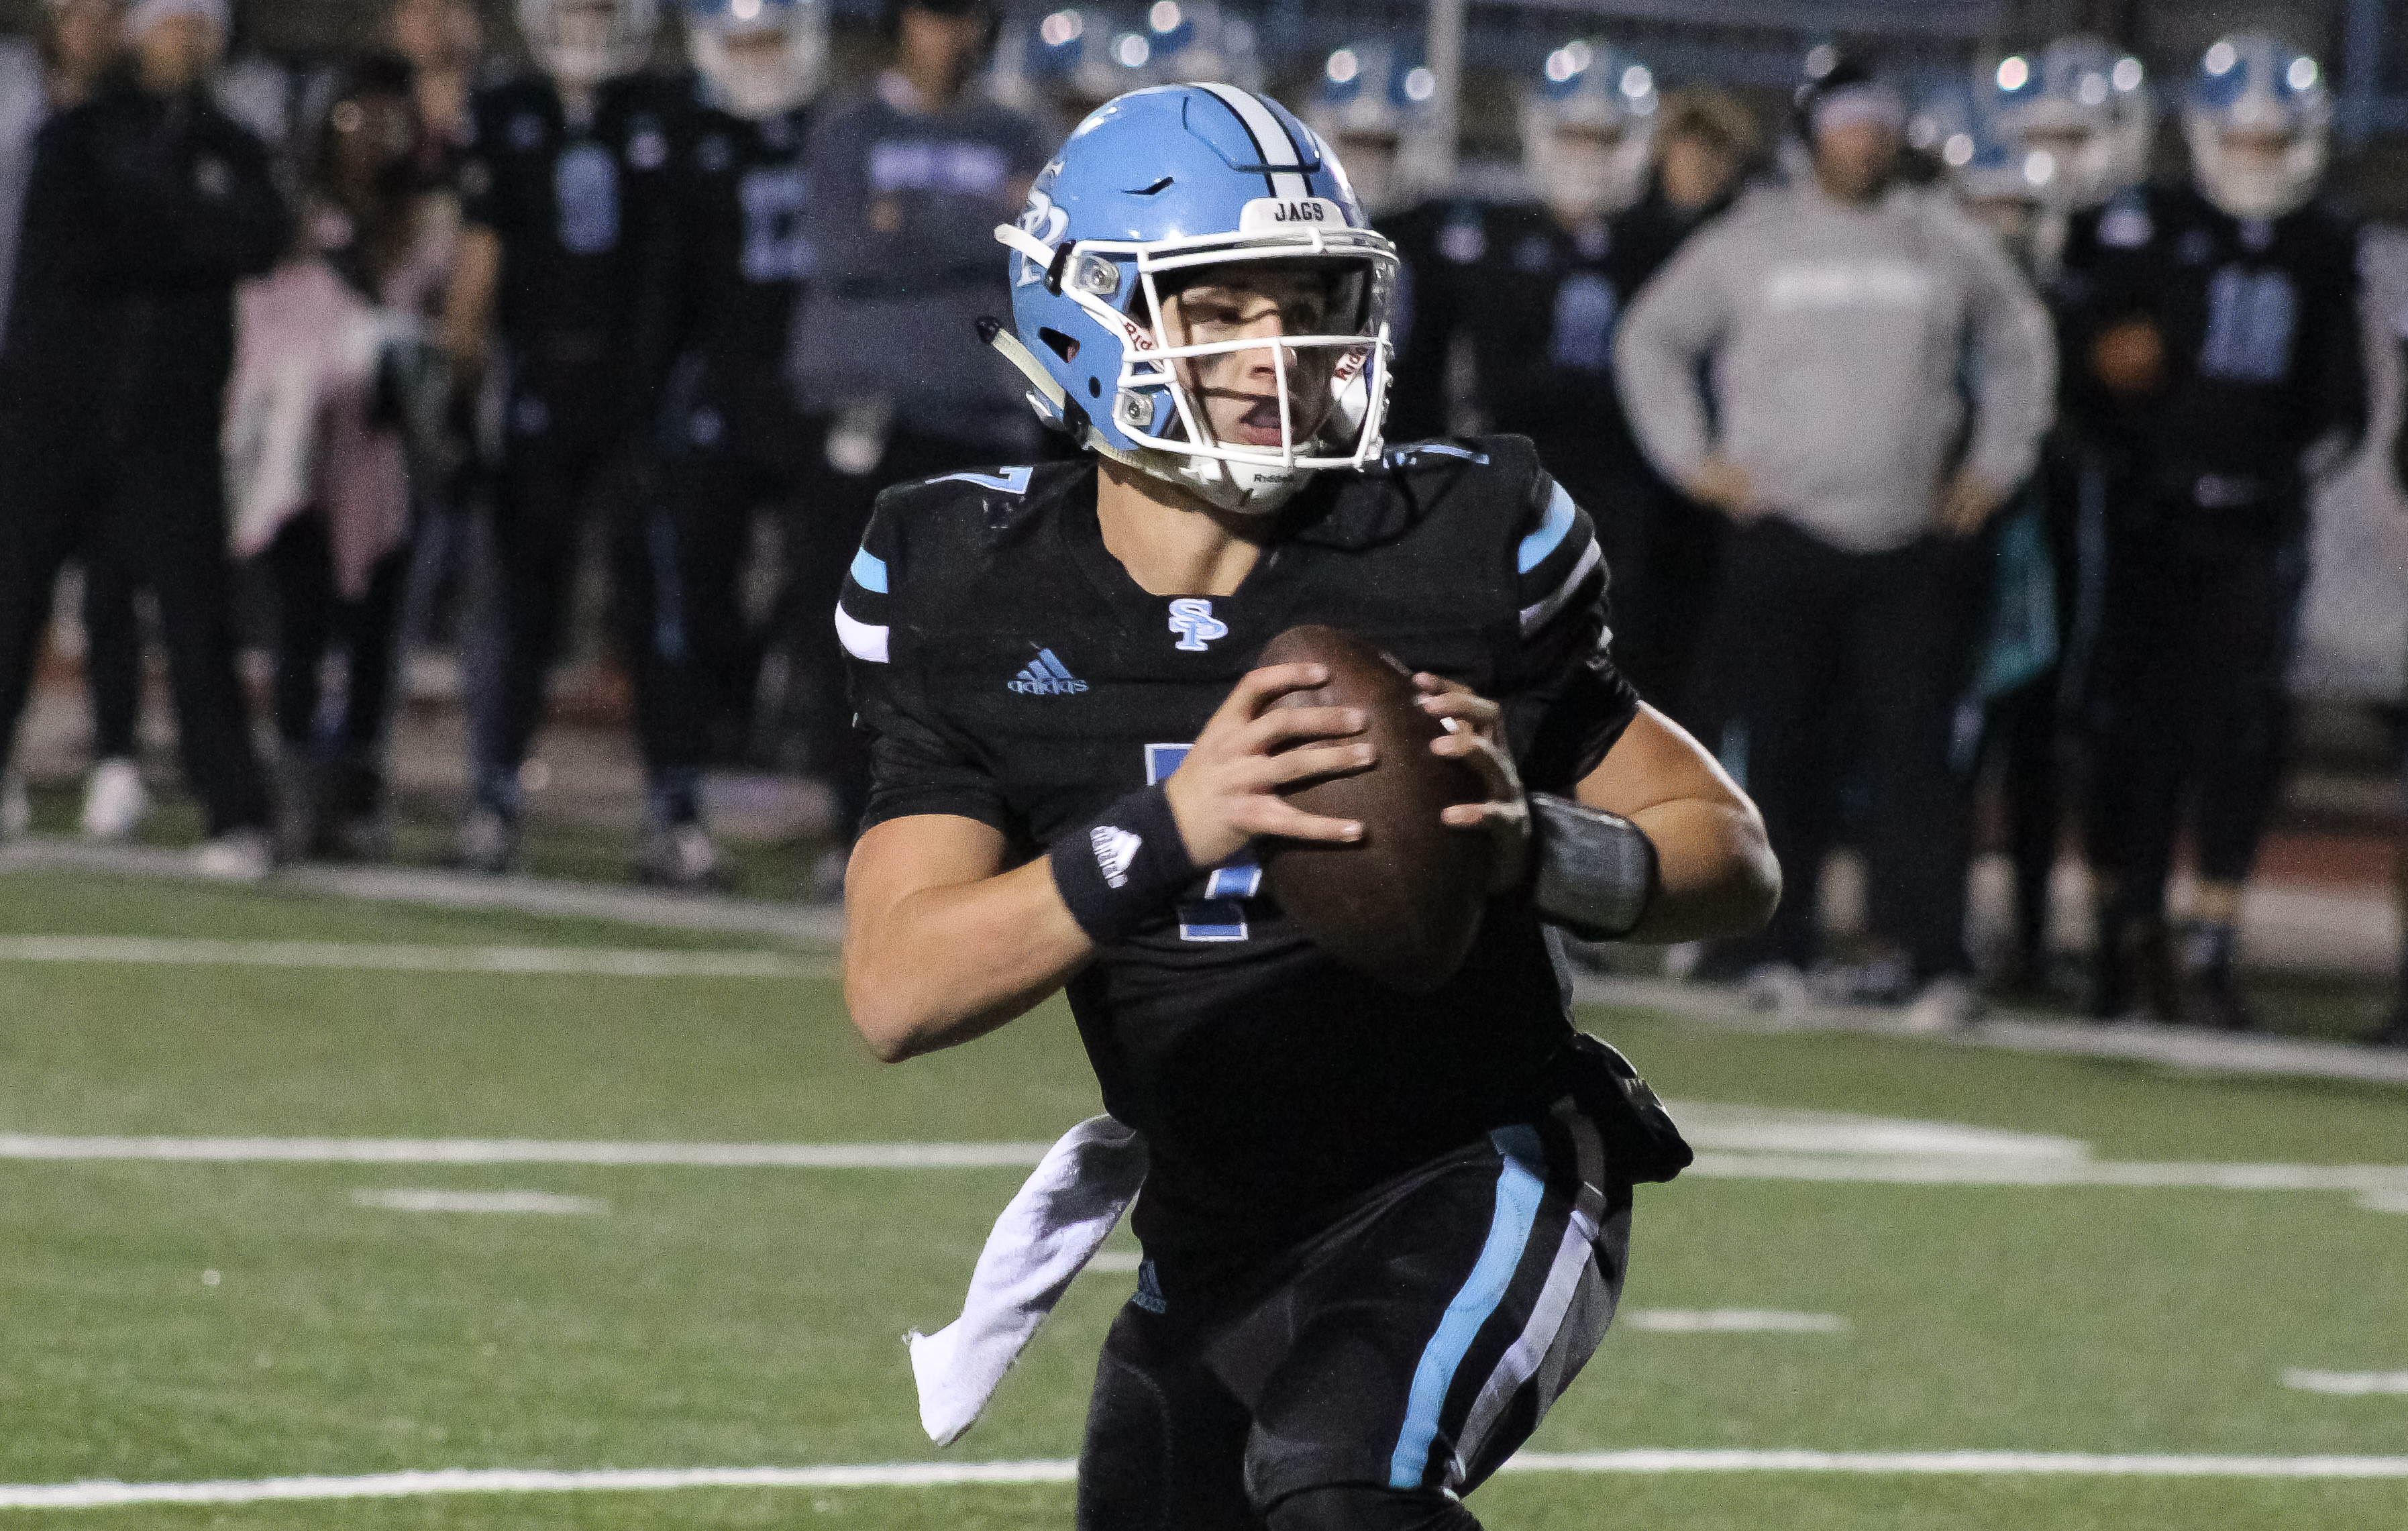 Spain Park squeaks past Shades Valley in season finale